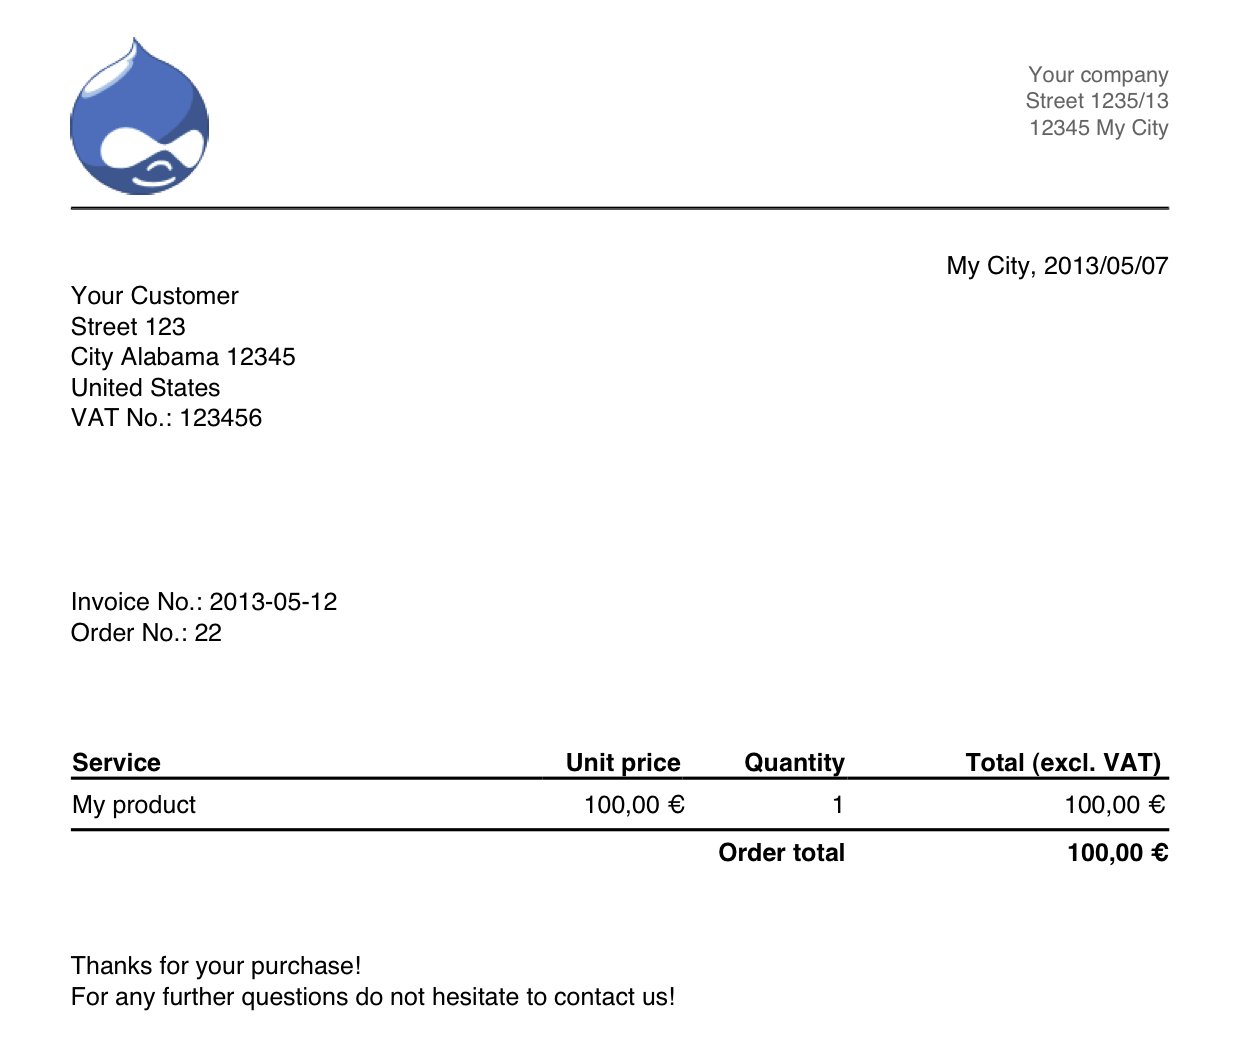 Commerce Billy Drupalorg - Order invoice